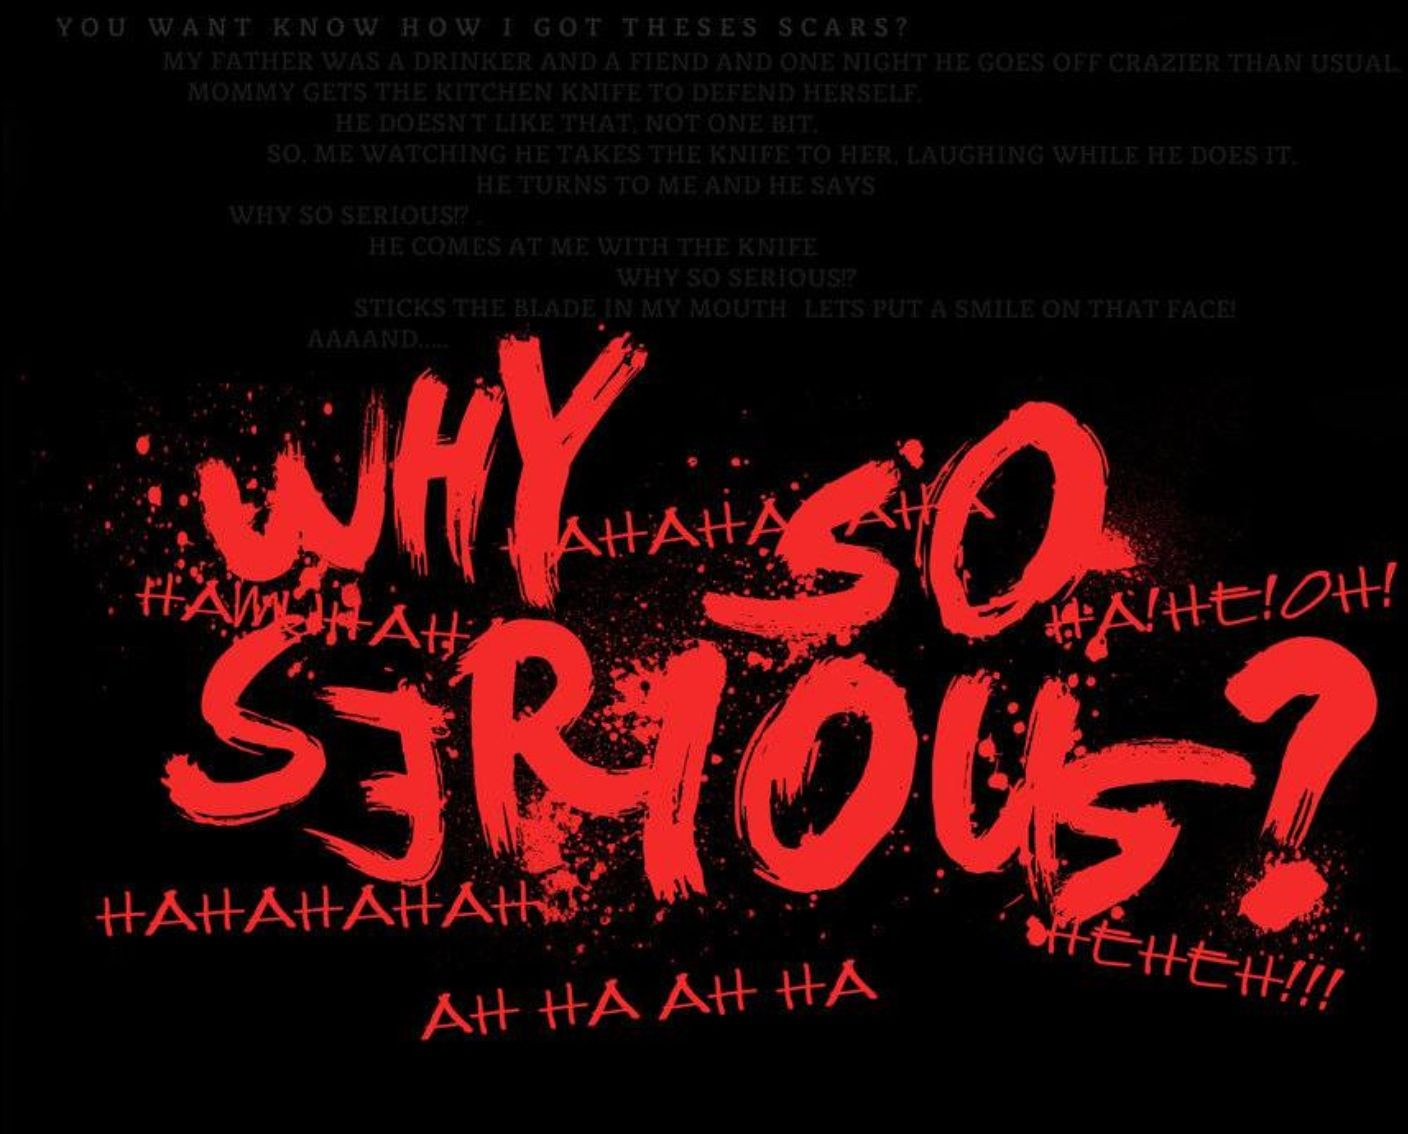 Pin by Pimmafloris on why so serious? Why so serious